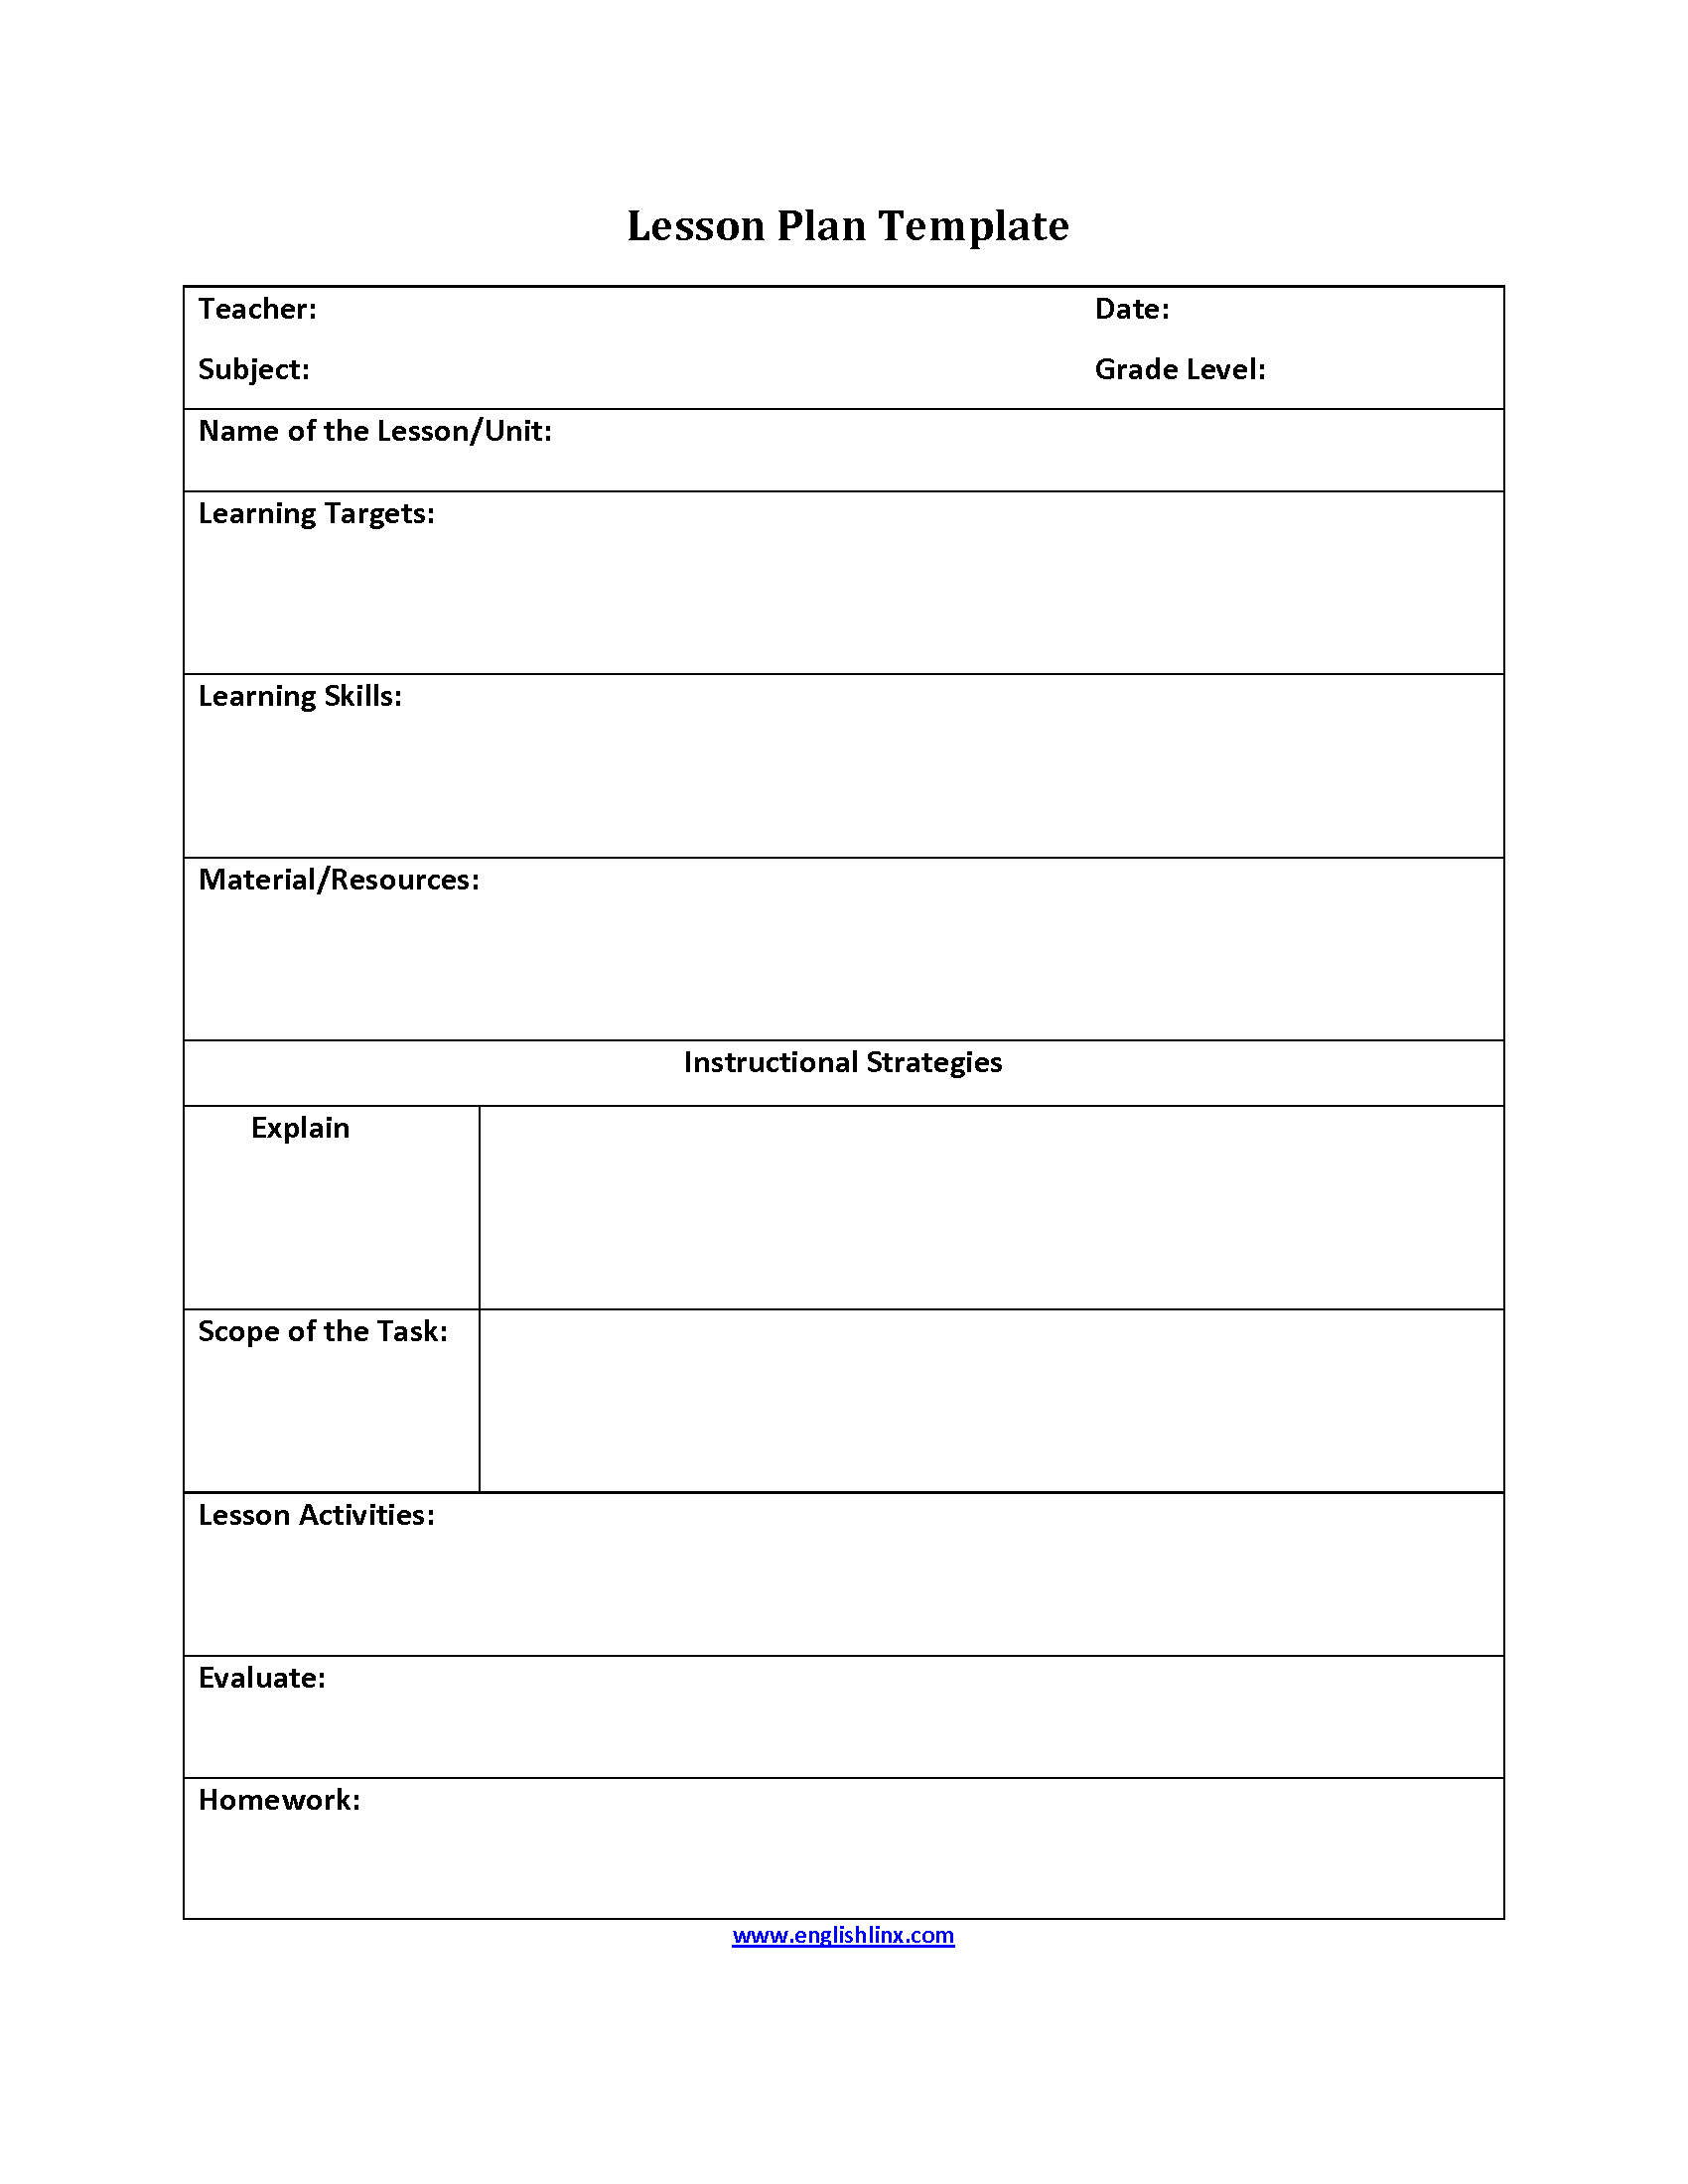 Lesson Plan Template in PDF